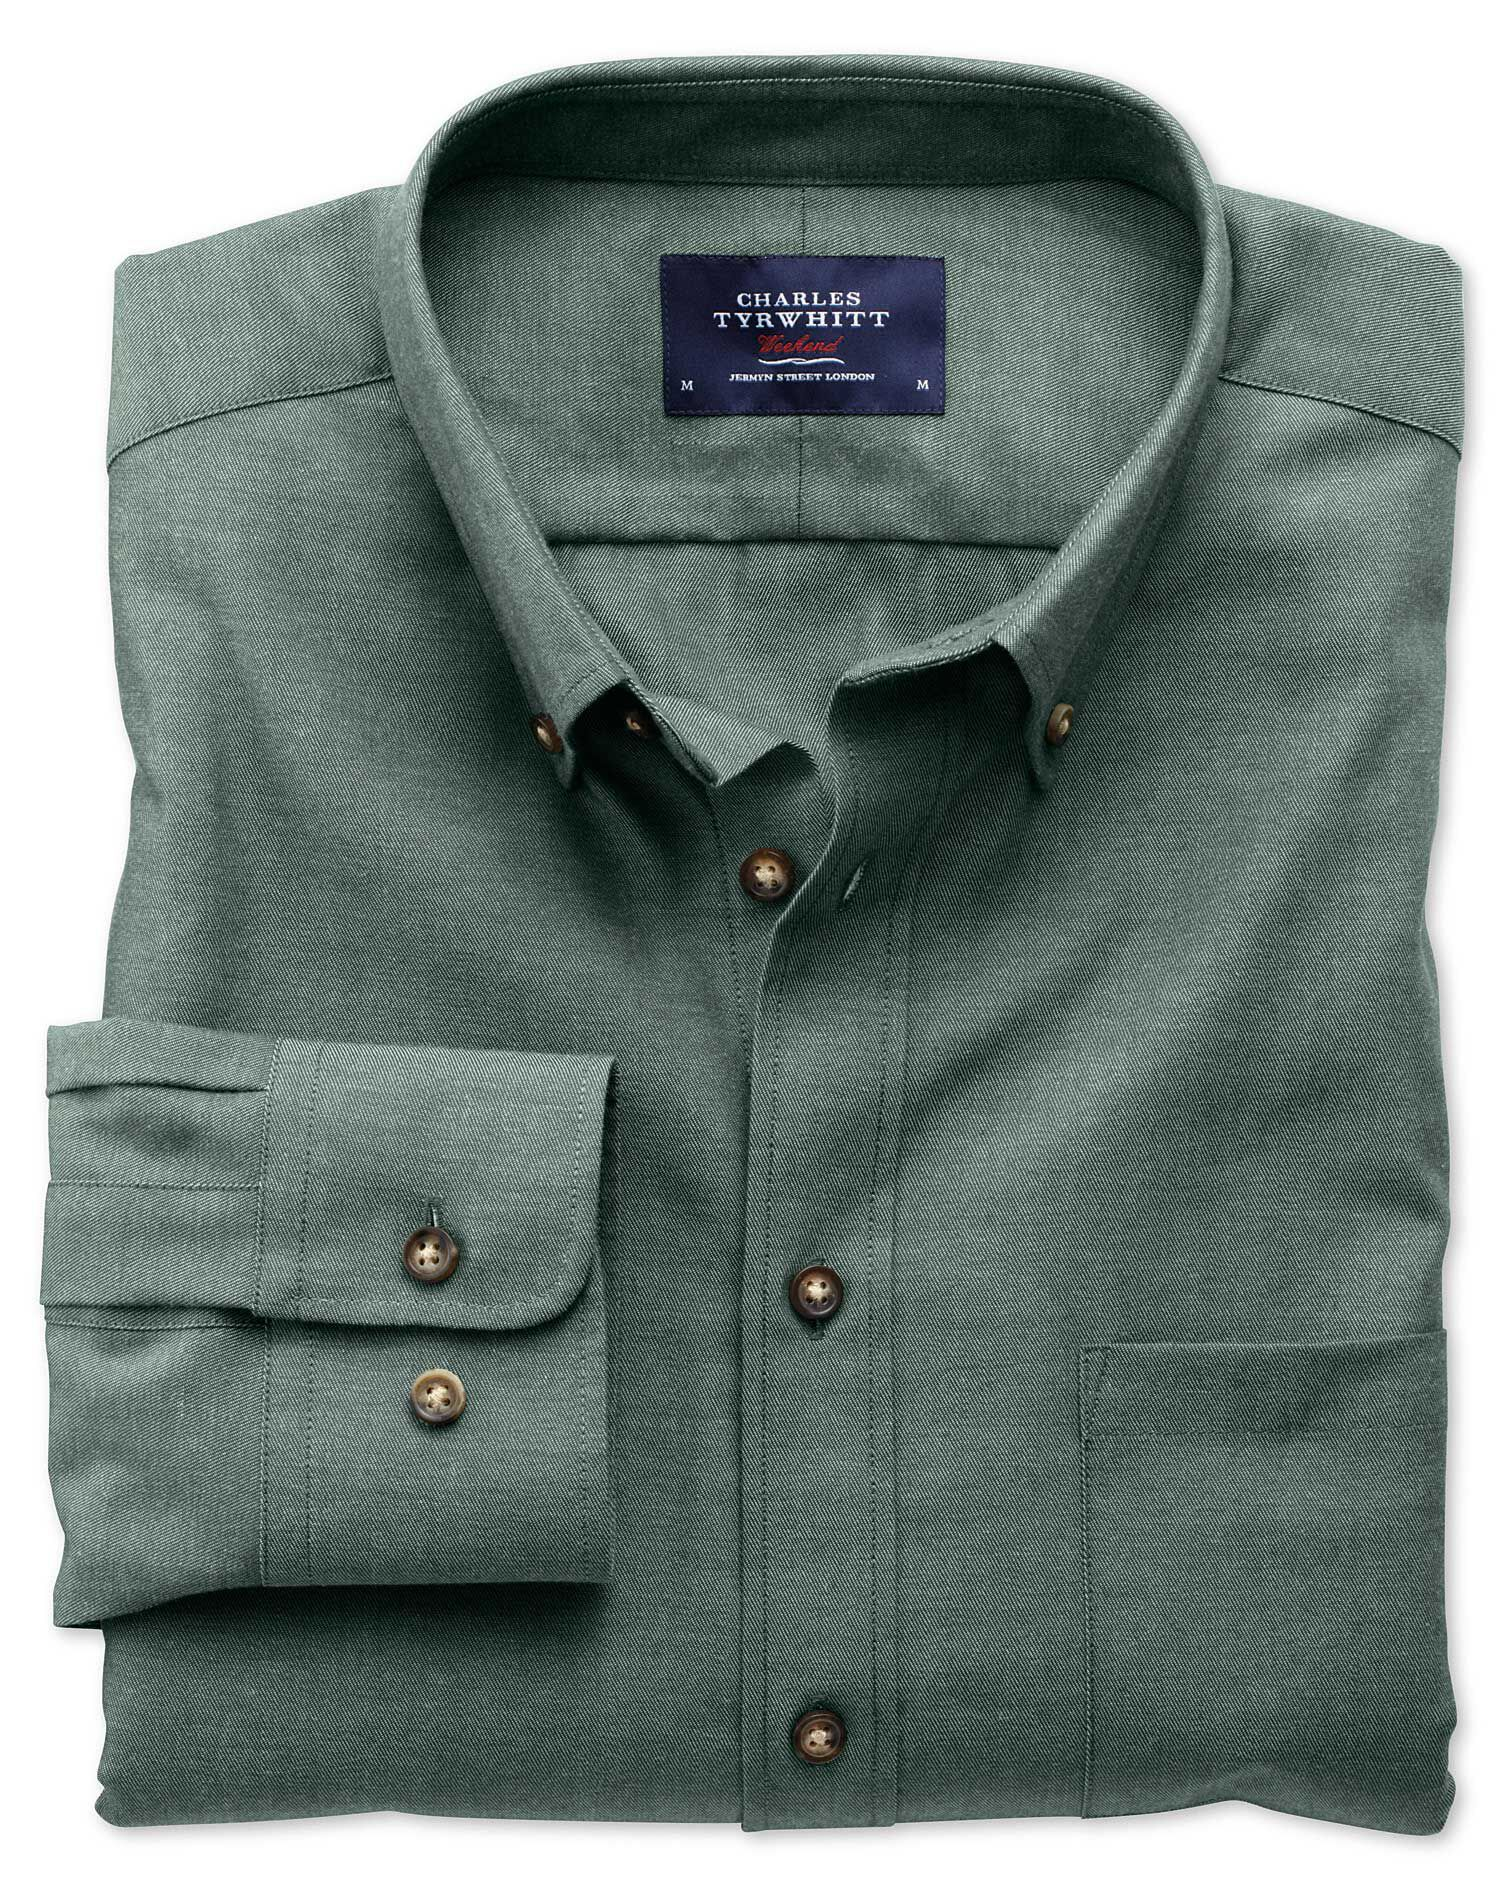 Extra Slim Fit Non-Iron Twill Forest Green Cotton Shirt Single Cuff Size XS by Charles Tyrwhitt